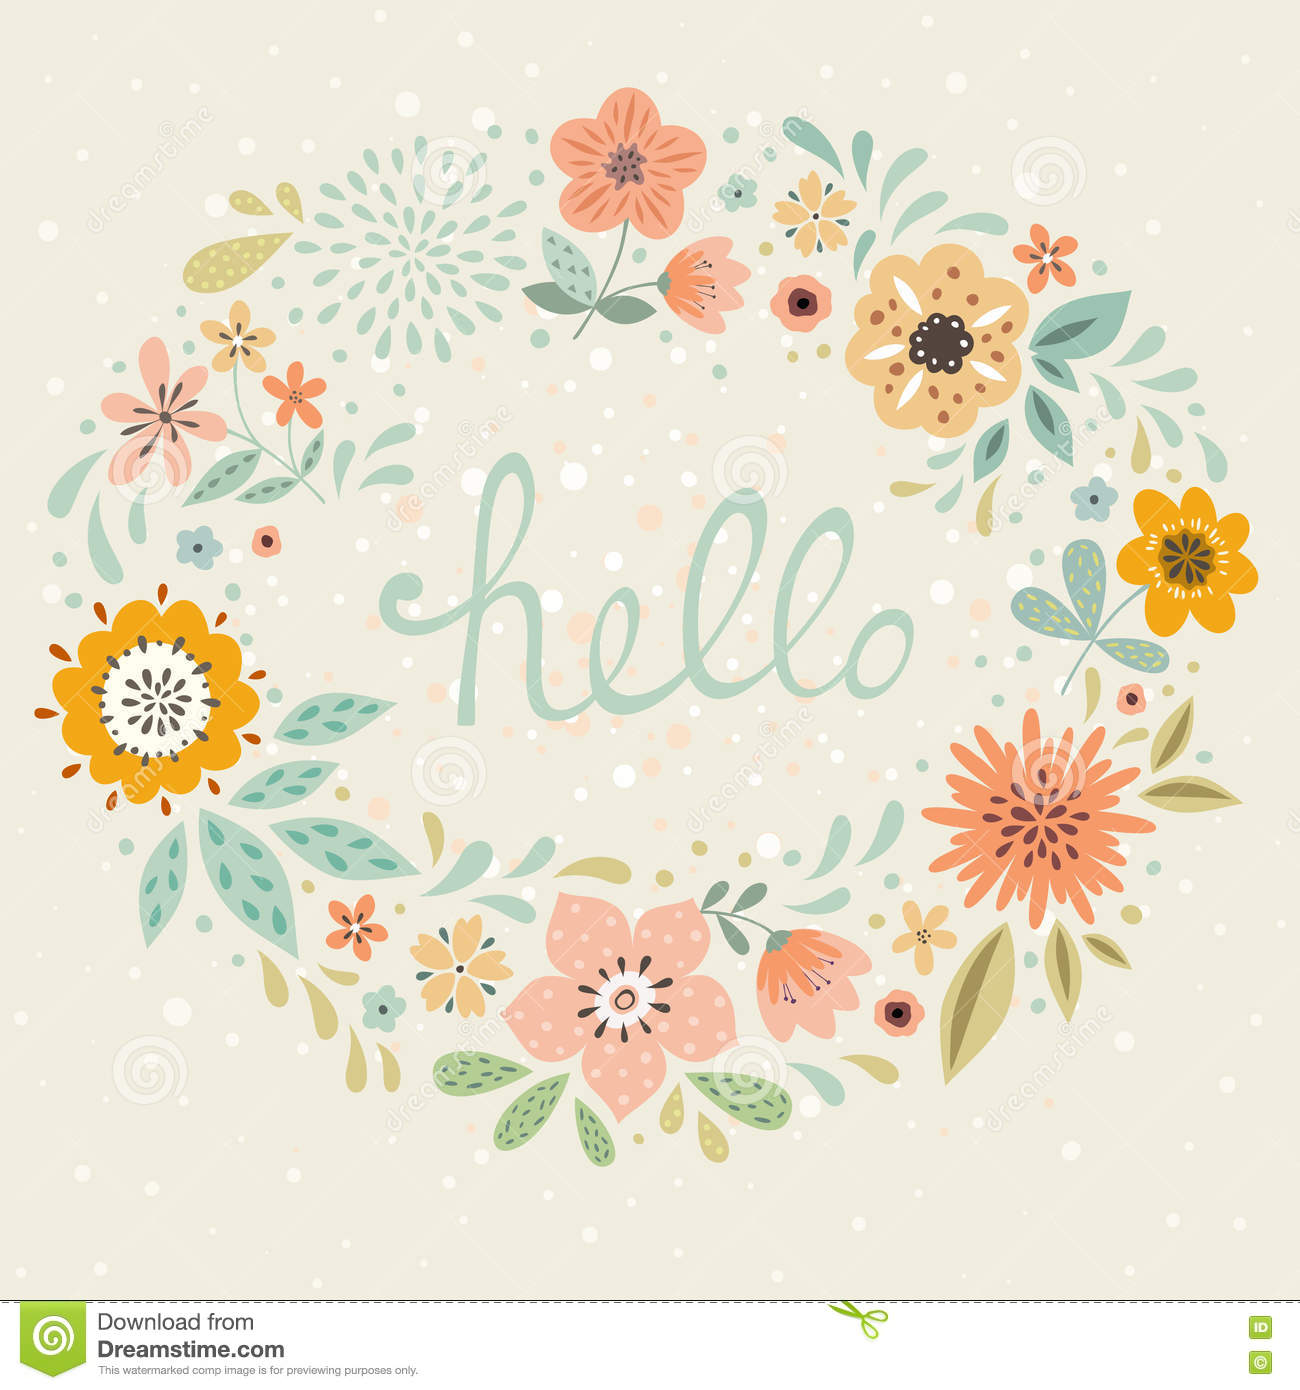 List Of Synonyms And Antonyms Of The Word Hello Greeting Card